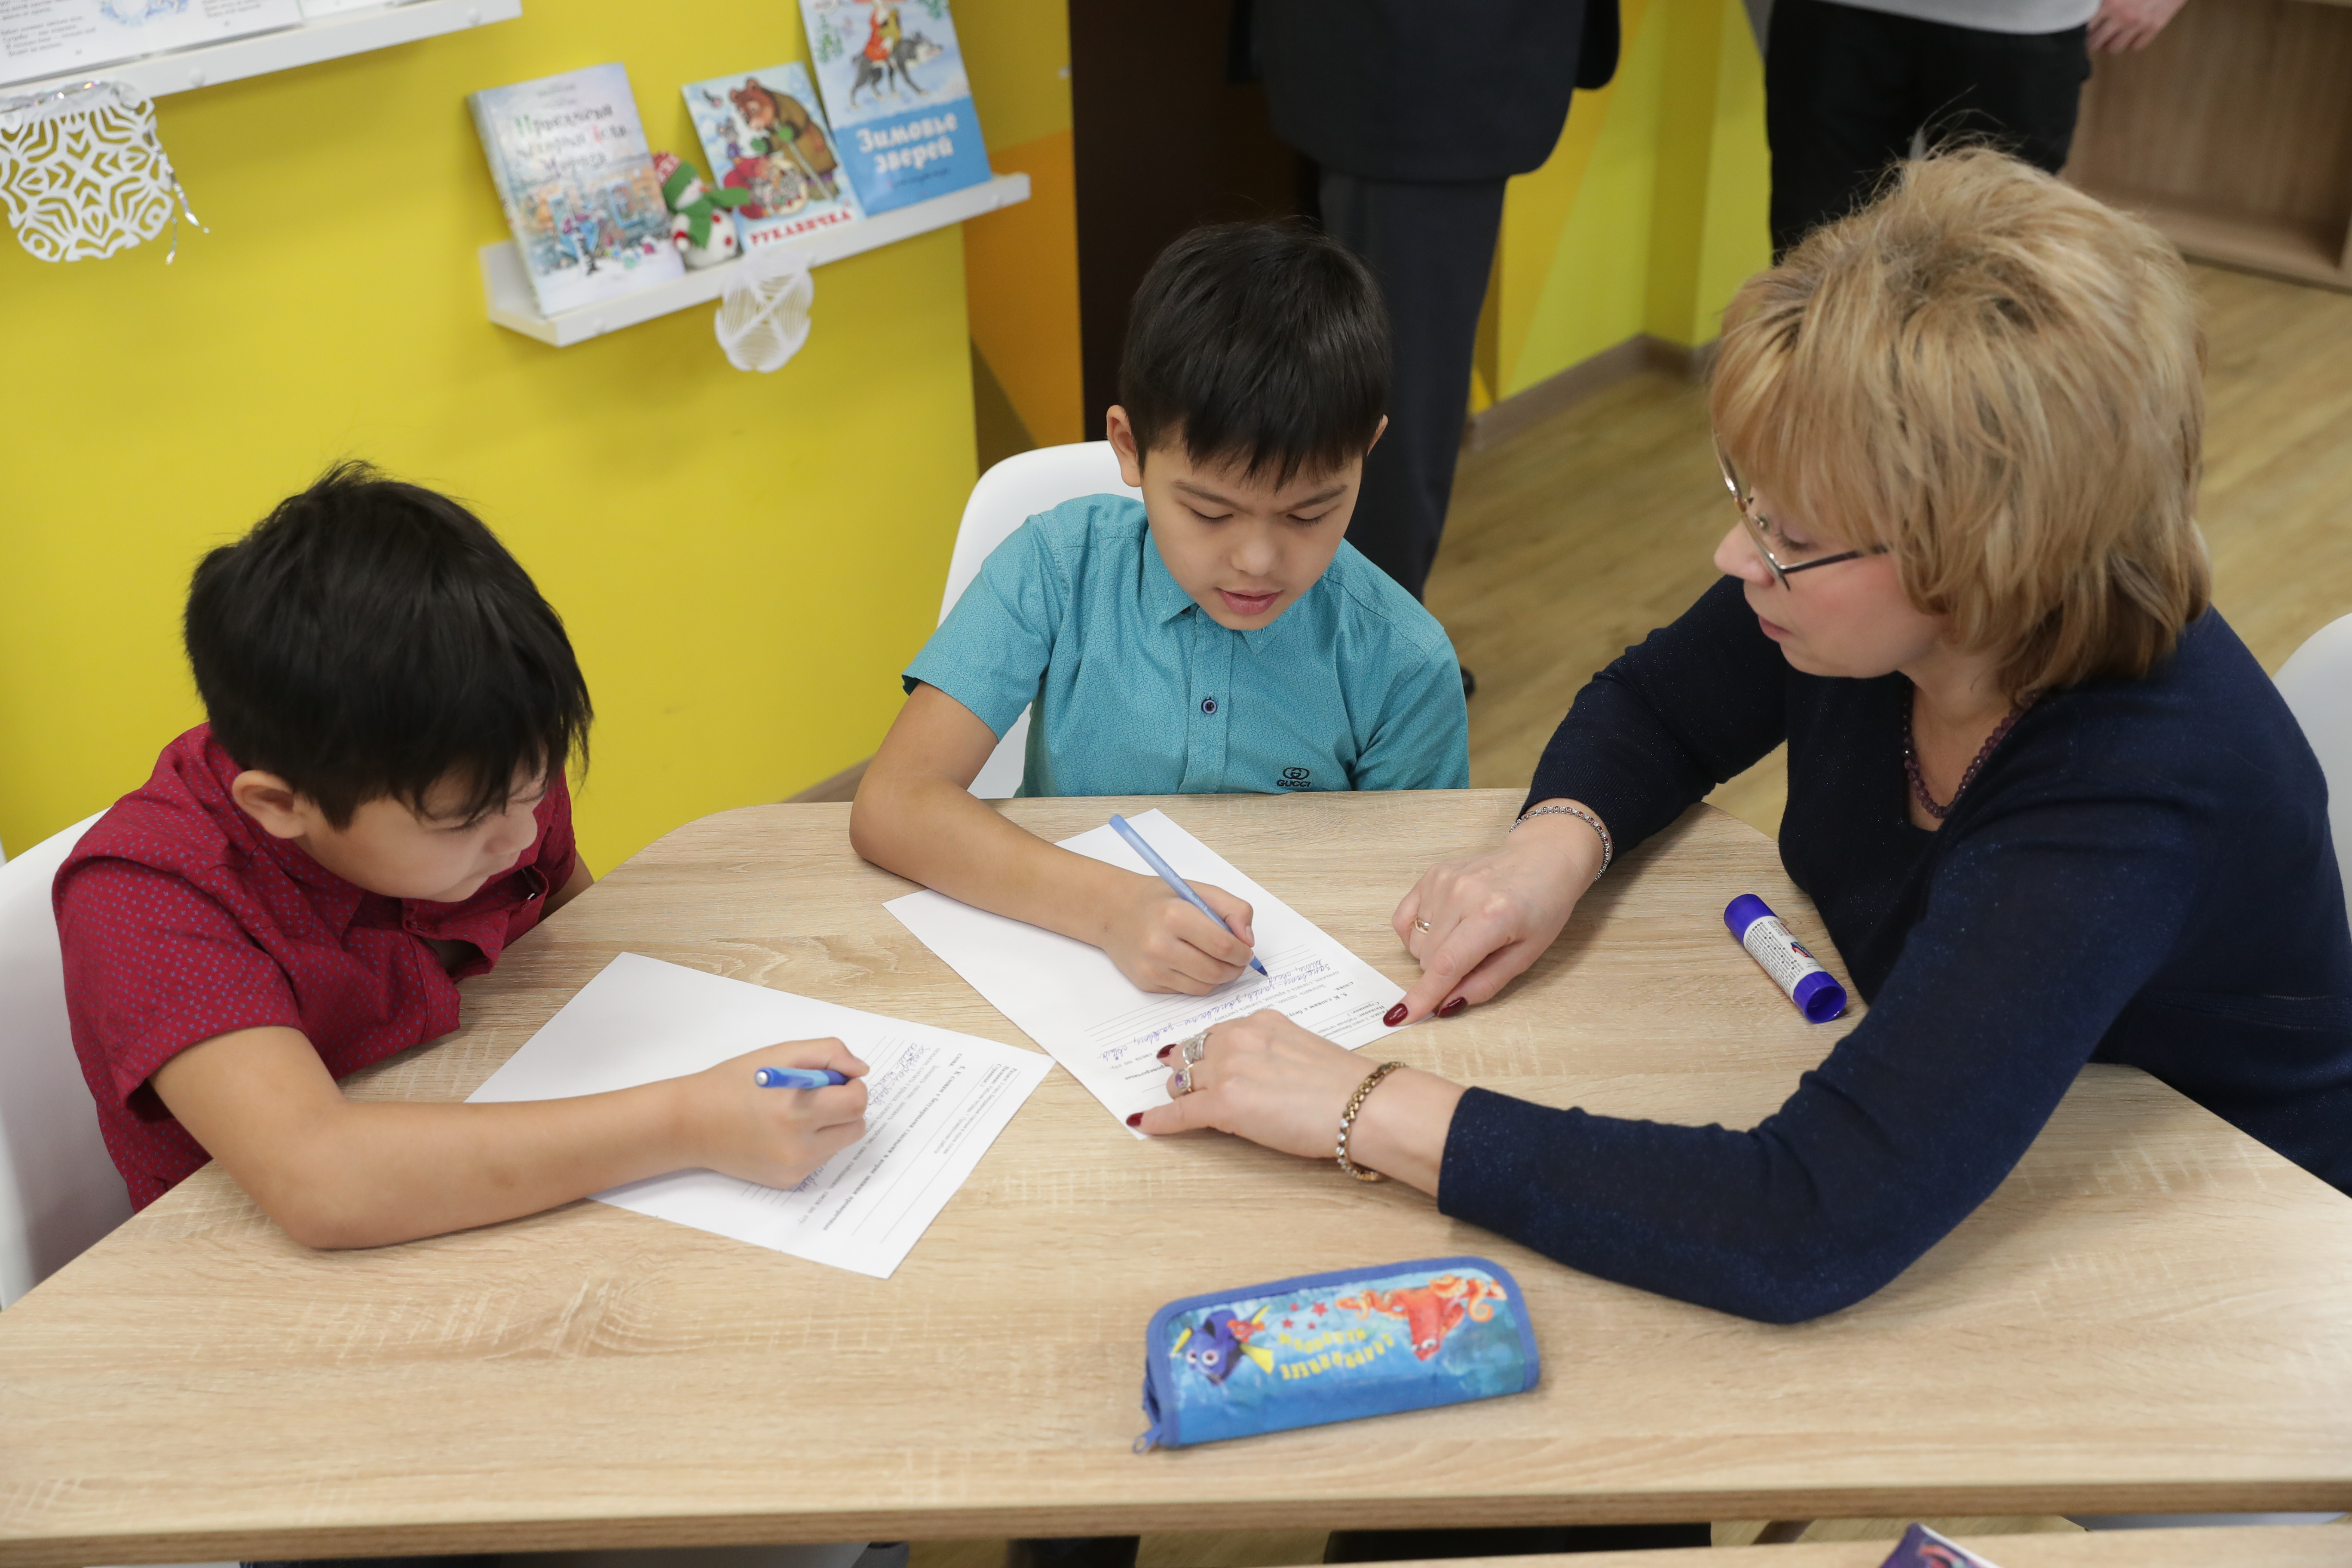 A teacher sits at a work table with two young students.